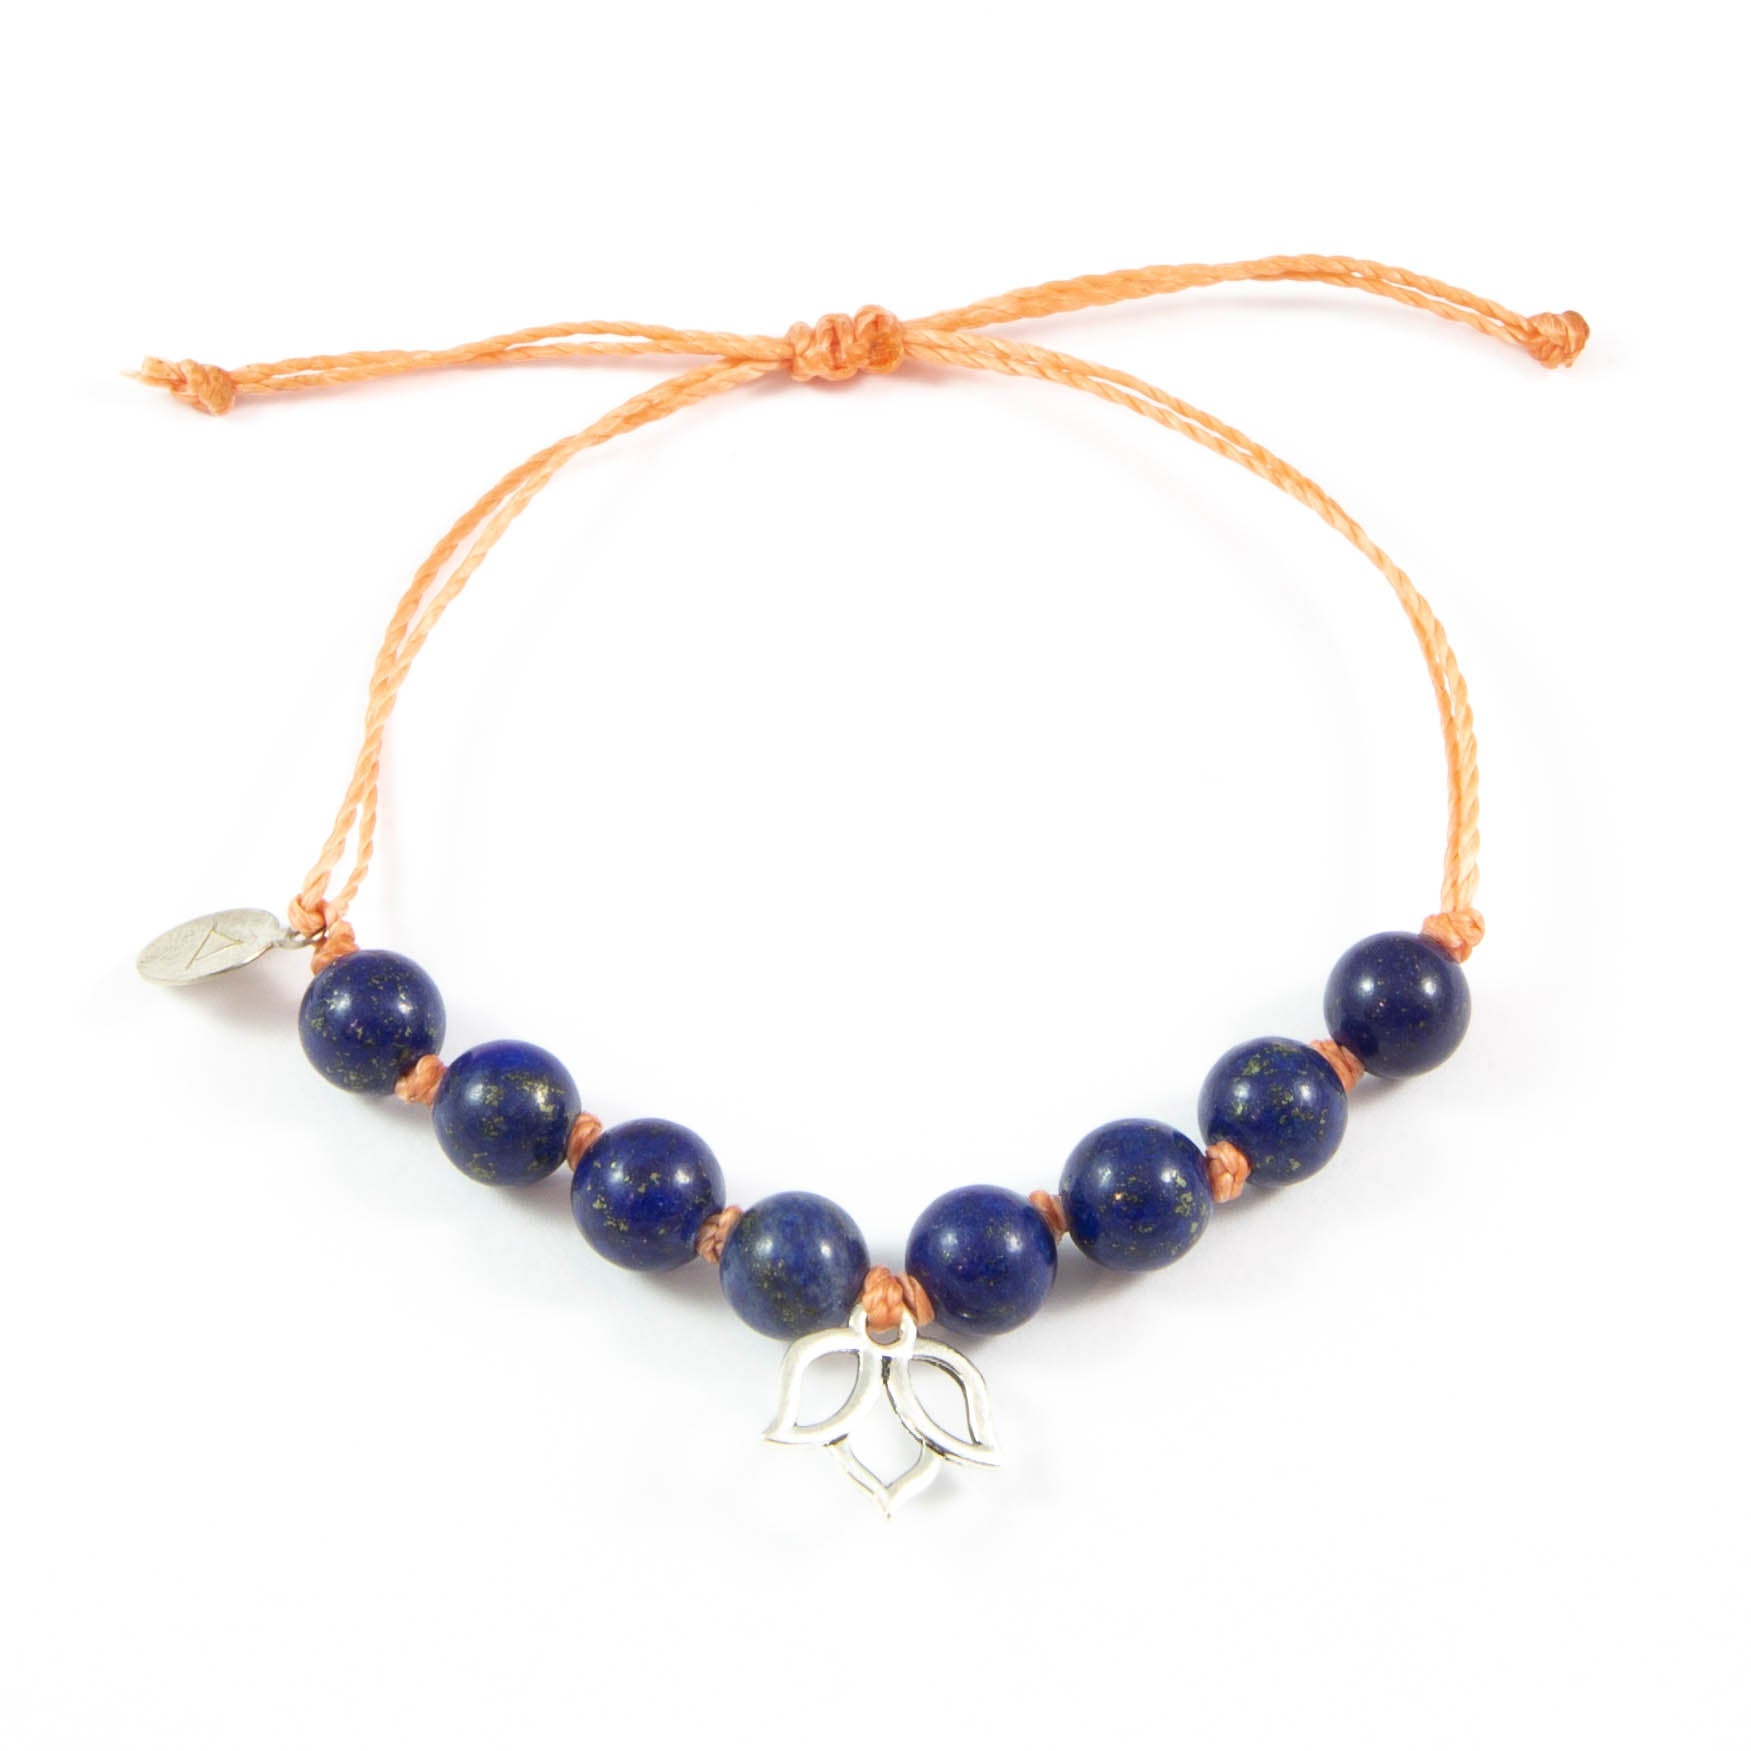 Coral & Blue Lapis Lotus Flower Bracelet in Silver